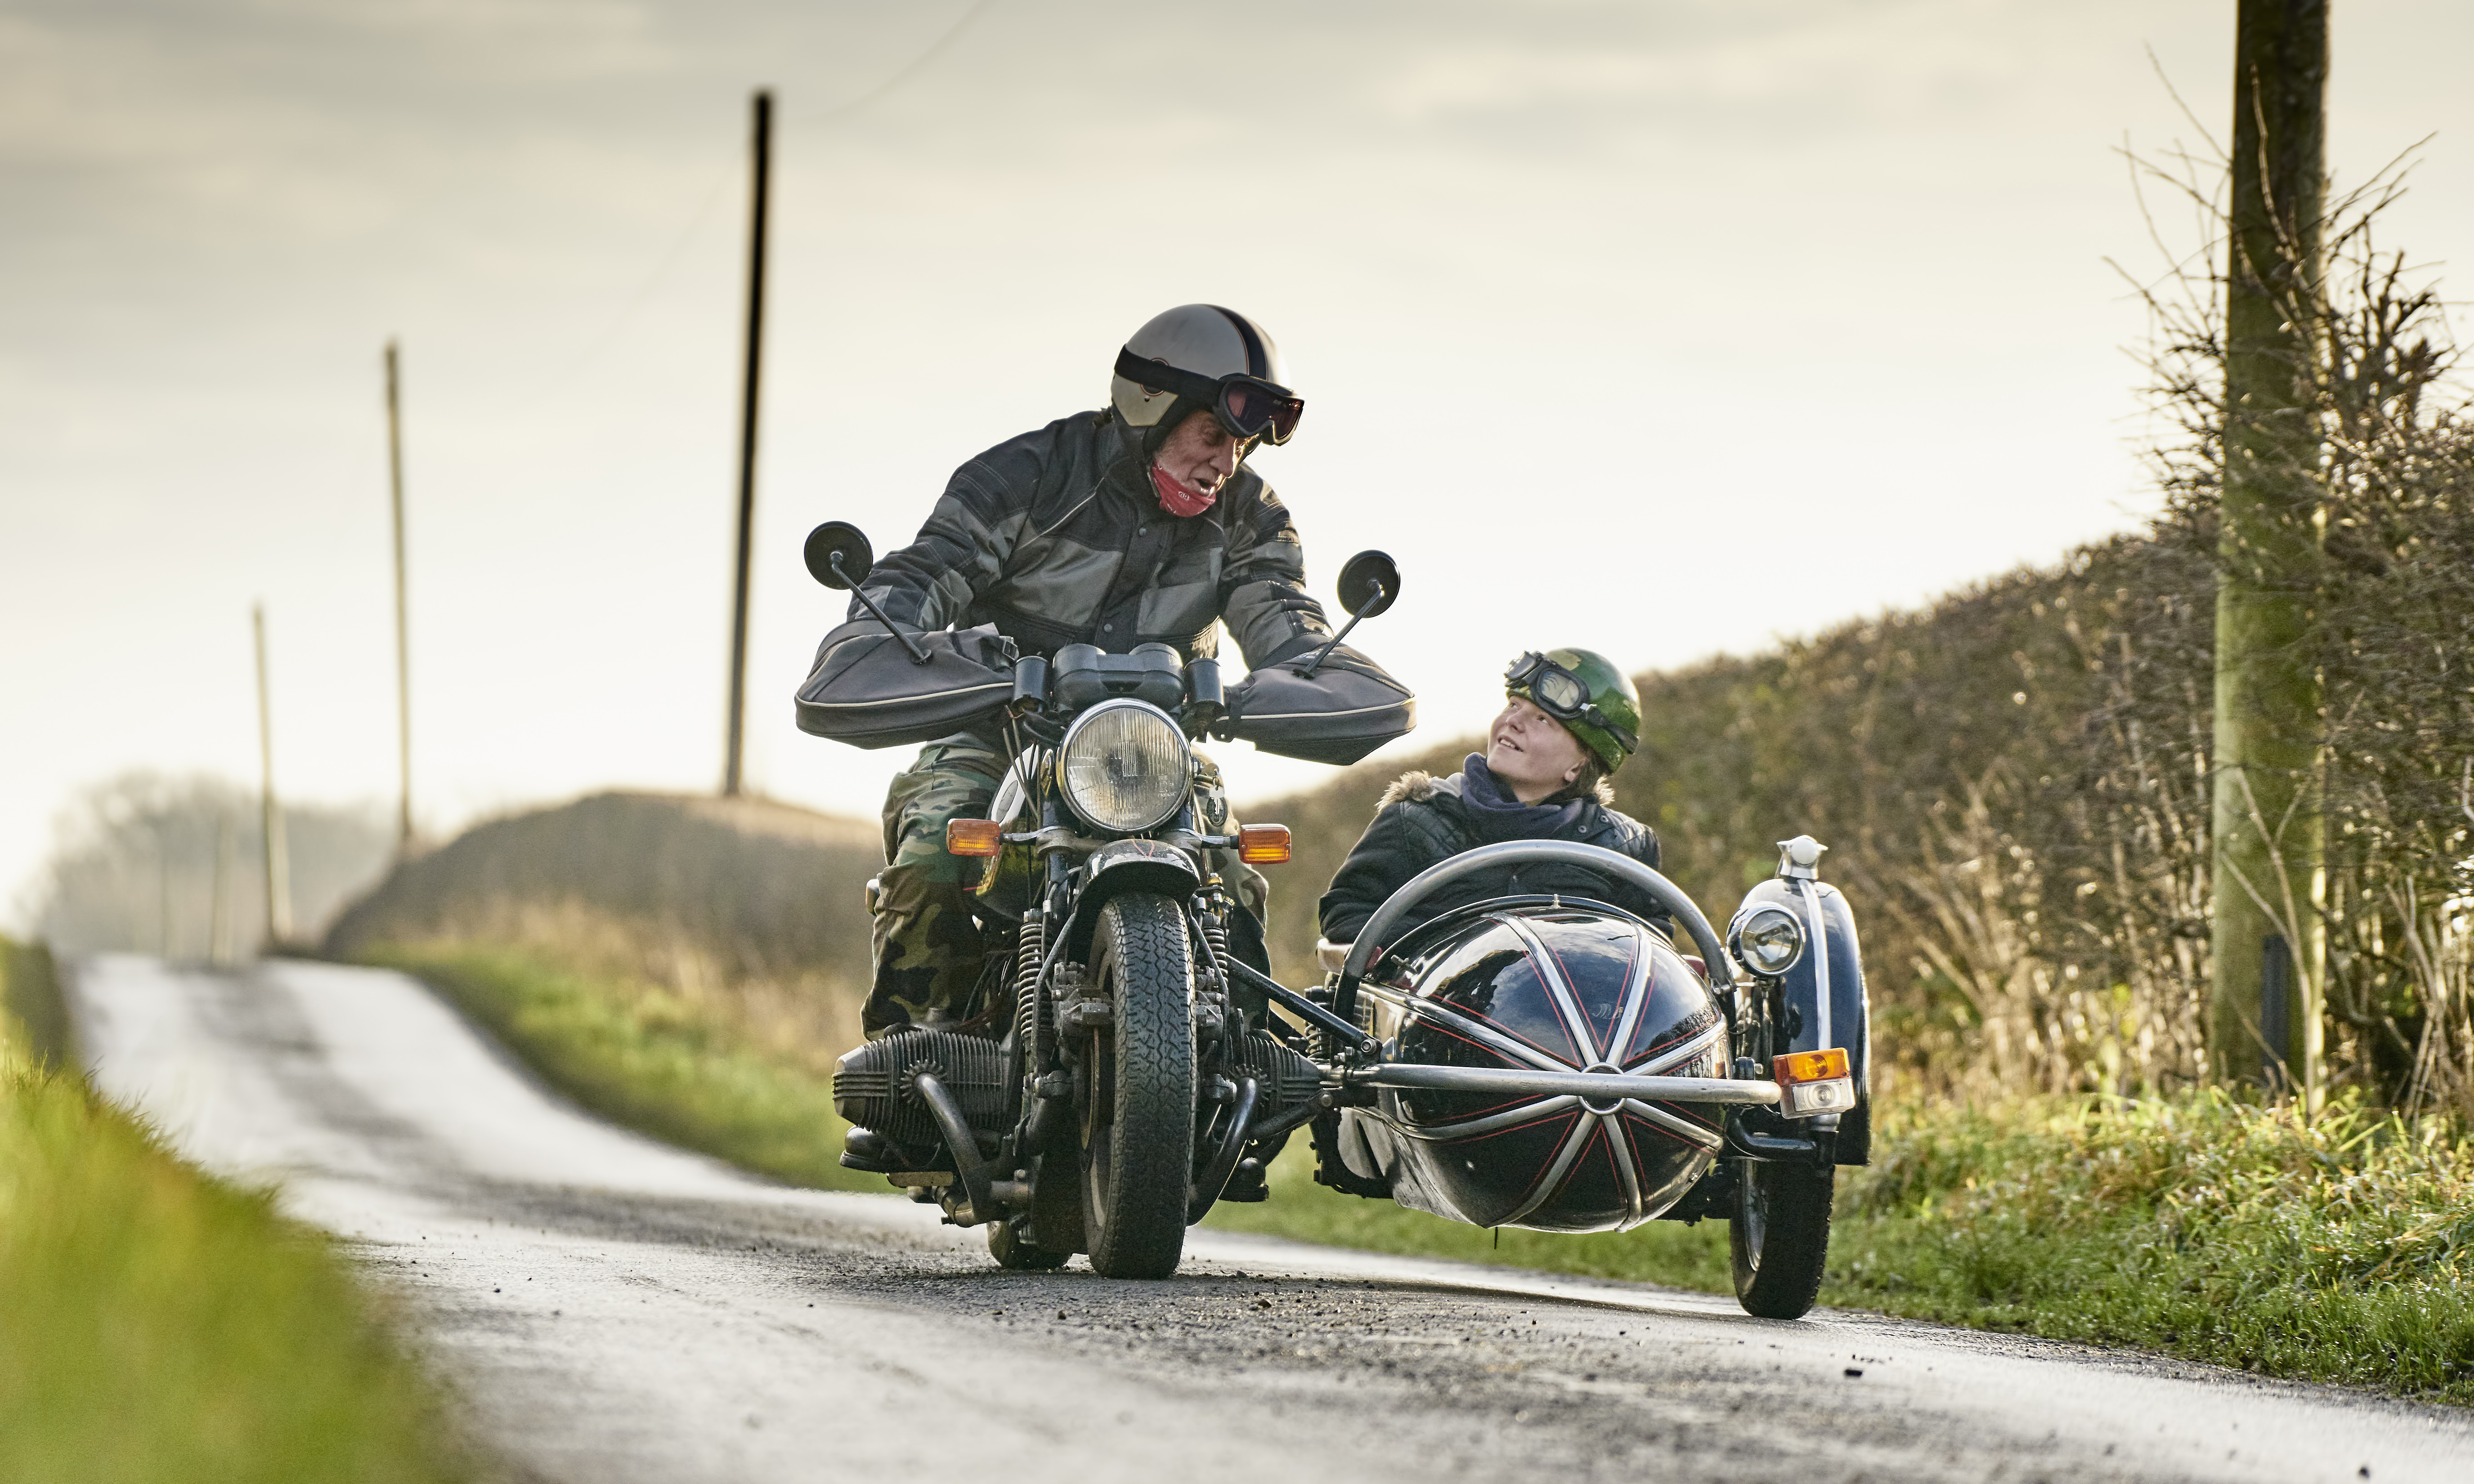 Senior man and grandson riding motorcycle and sidecar along rural road